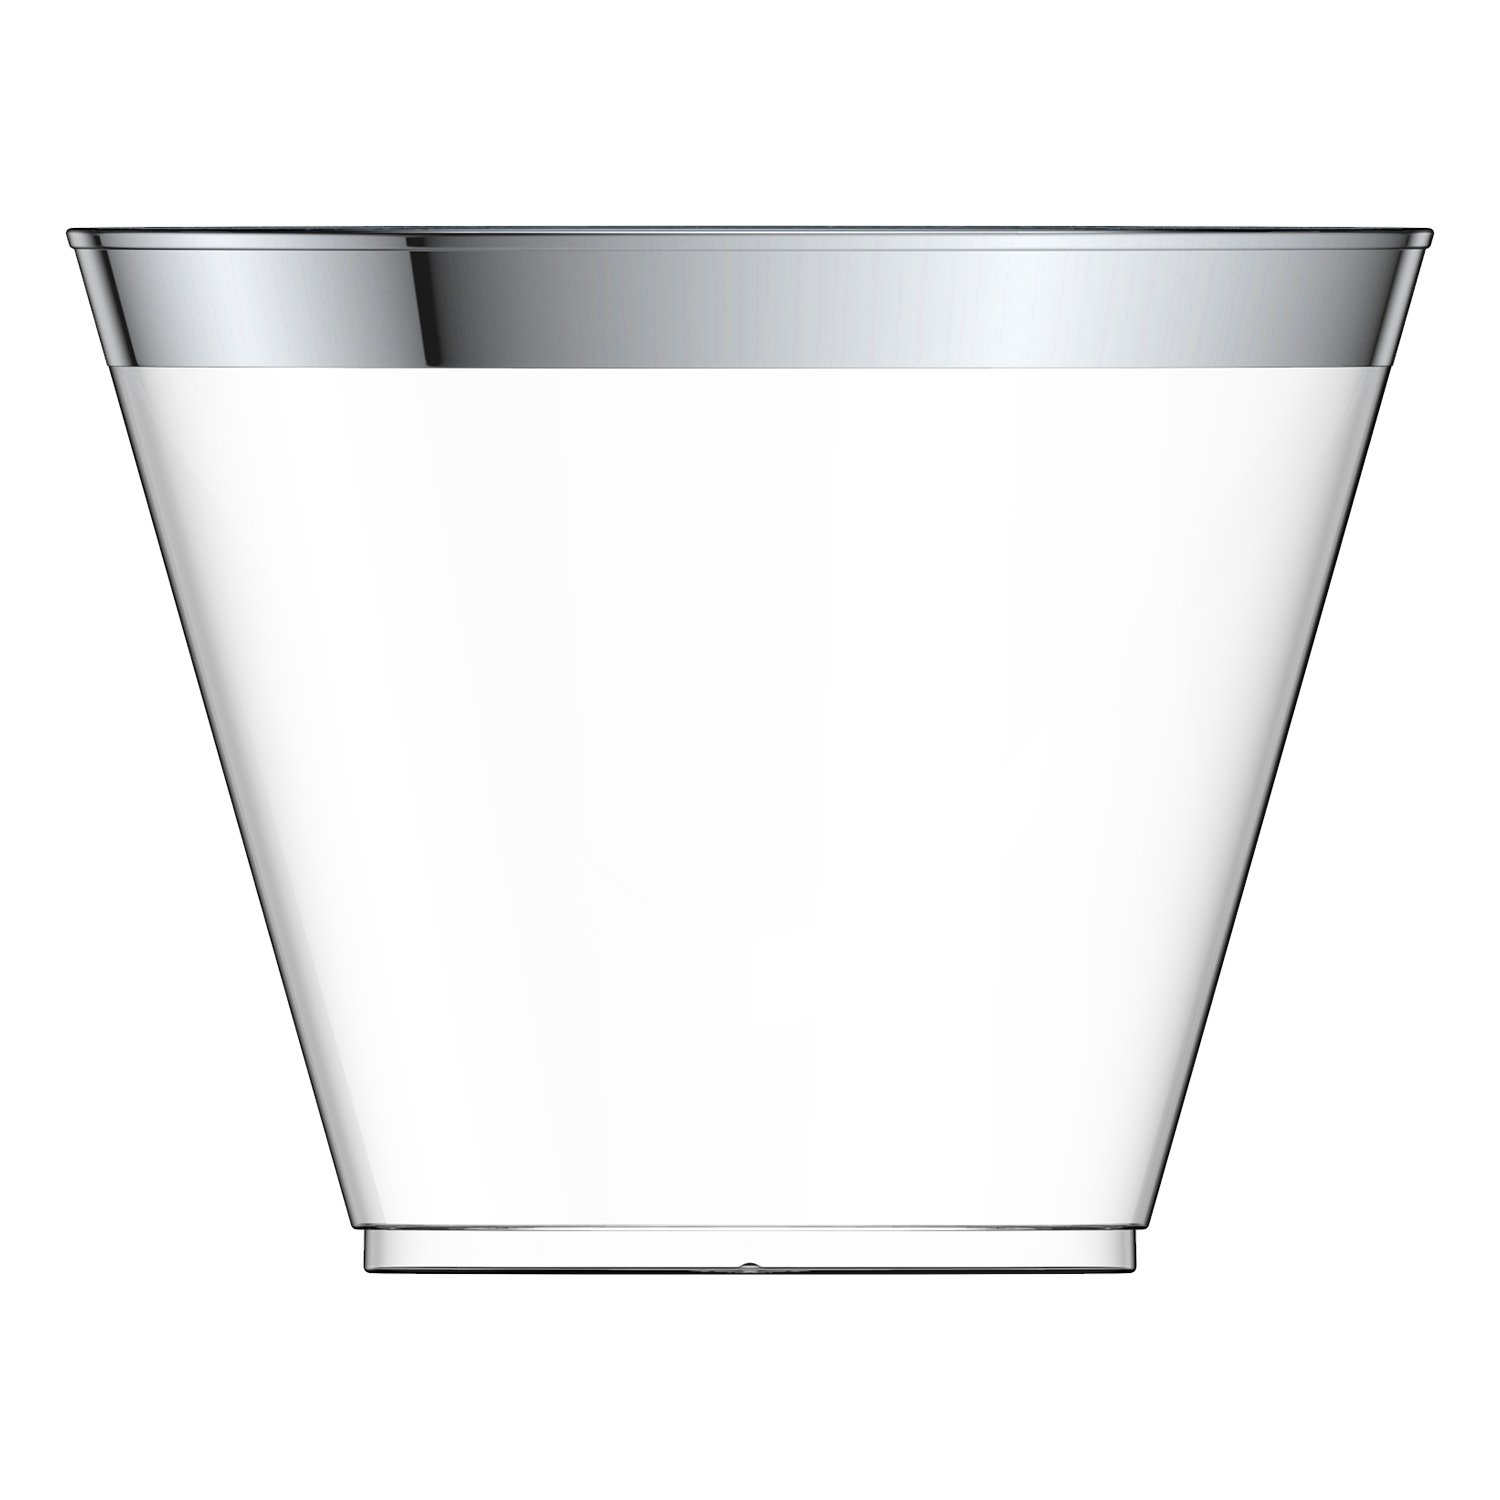 100 Silver Plastic Cups 9 Oz Silver Rimmed Tumblers Clear Plastic Cups Disposable Cups For Wedding Party